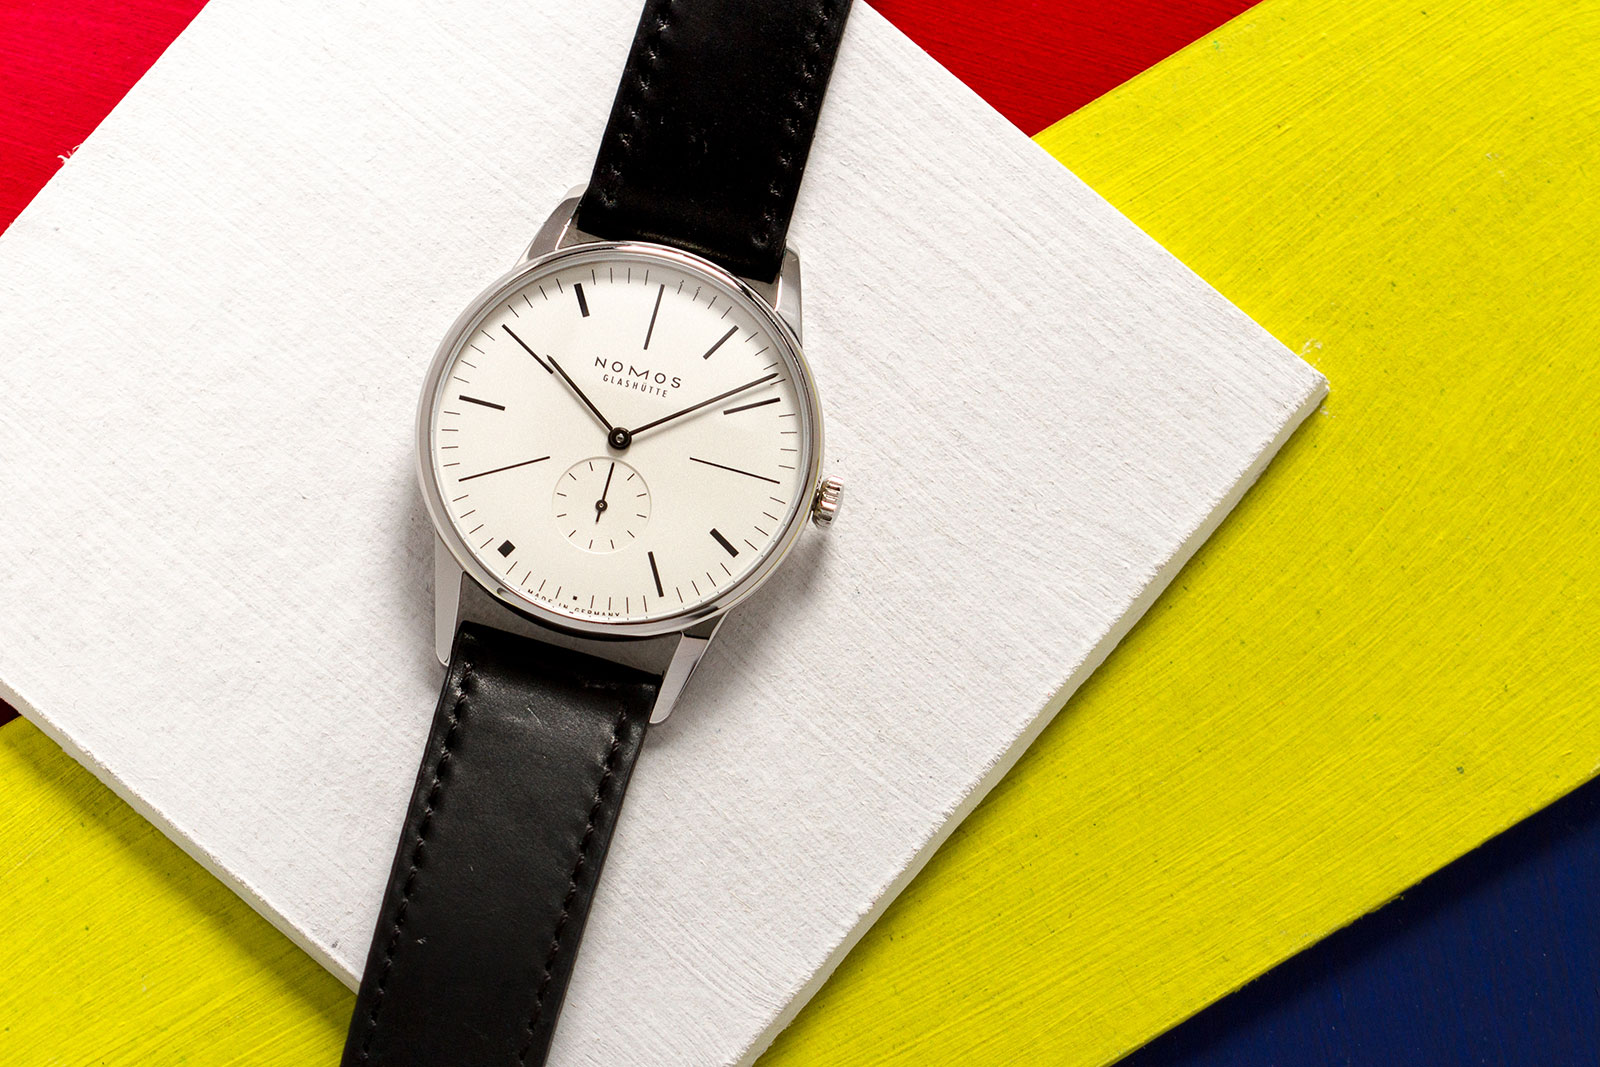 Nomos Orion 38 De Stijl Ace Jewelers 4